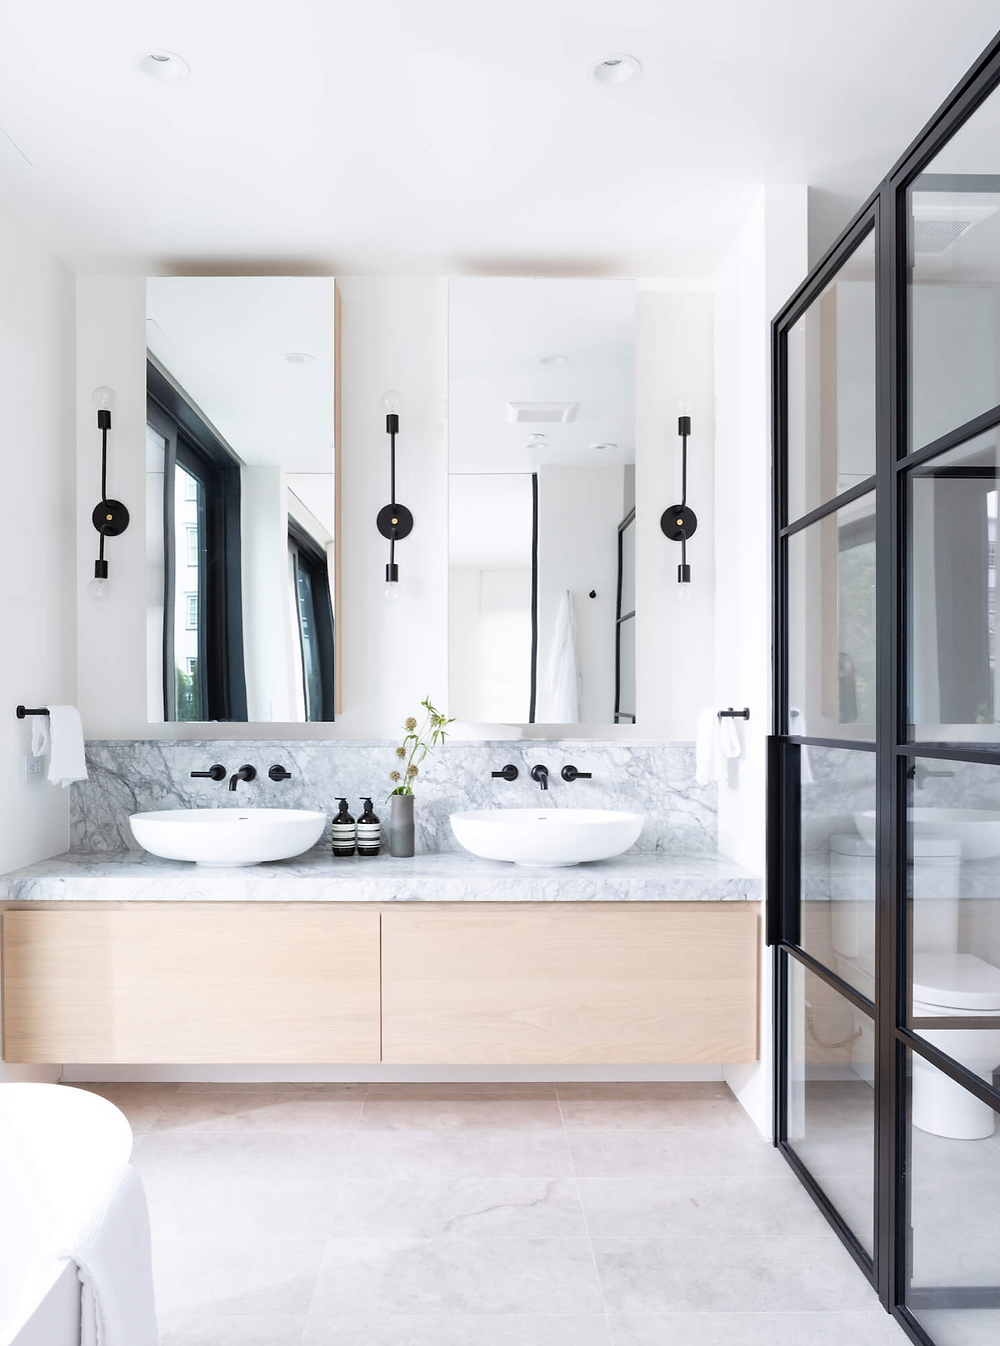 A modern bathroom with black accents, light wood cabinets, marble countertops and rectangular mirrors.